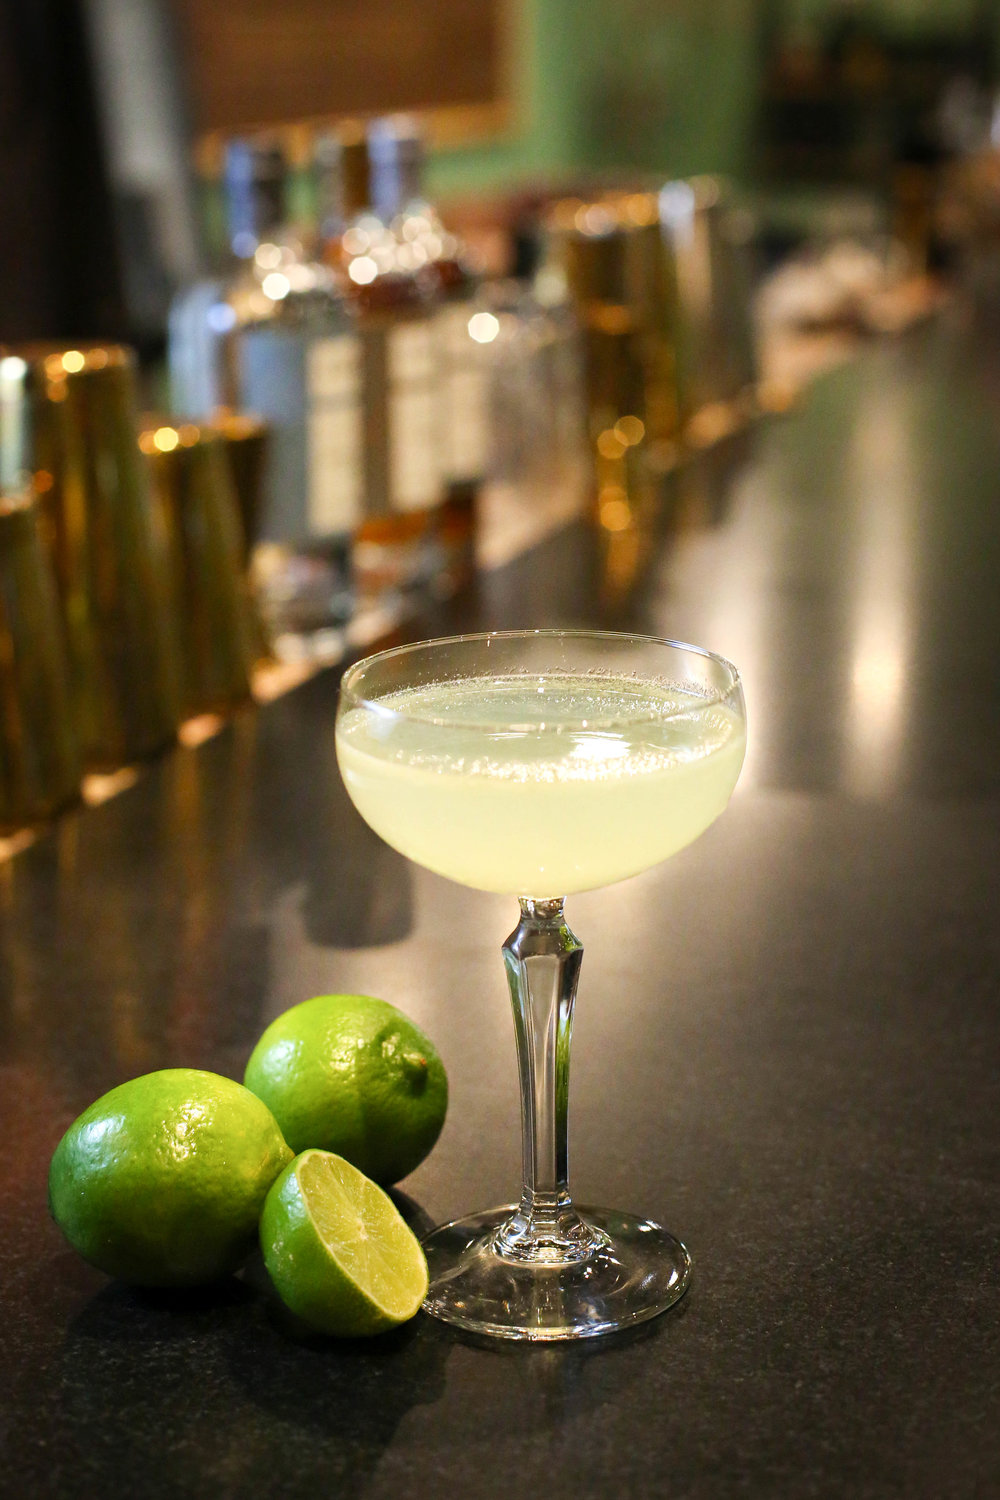 GIMLET   2 oz Corgi Spirits Pembroke Gin  0.75 oz lime juice  0.75 oz simple syrup  Fill a shaker with ice, add all ingredients and shake vigorously. Double strain into a coupe glass.